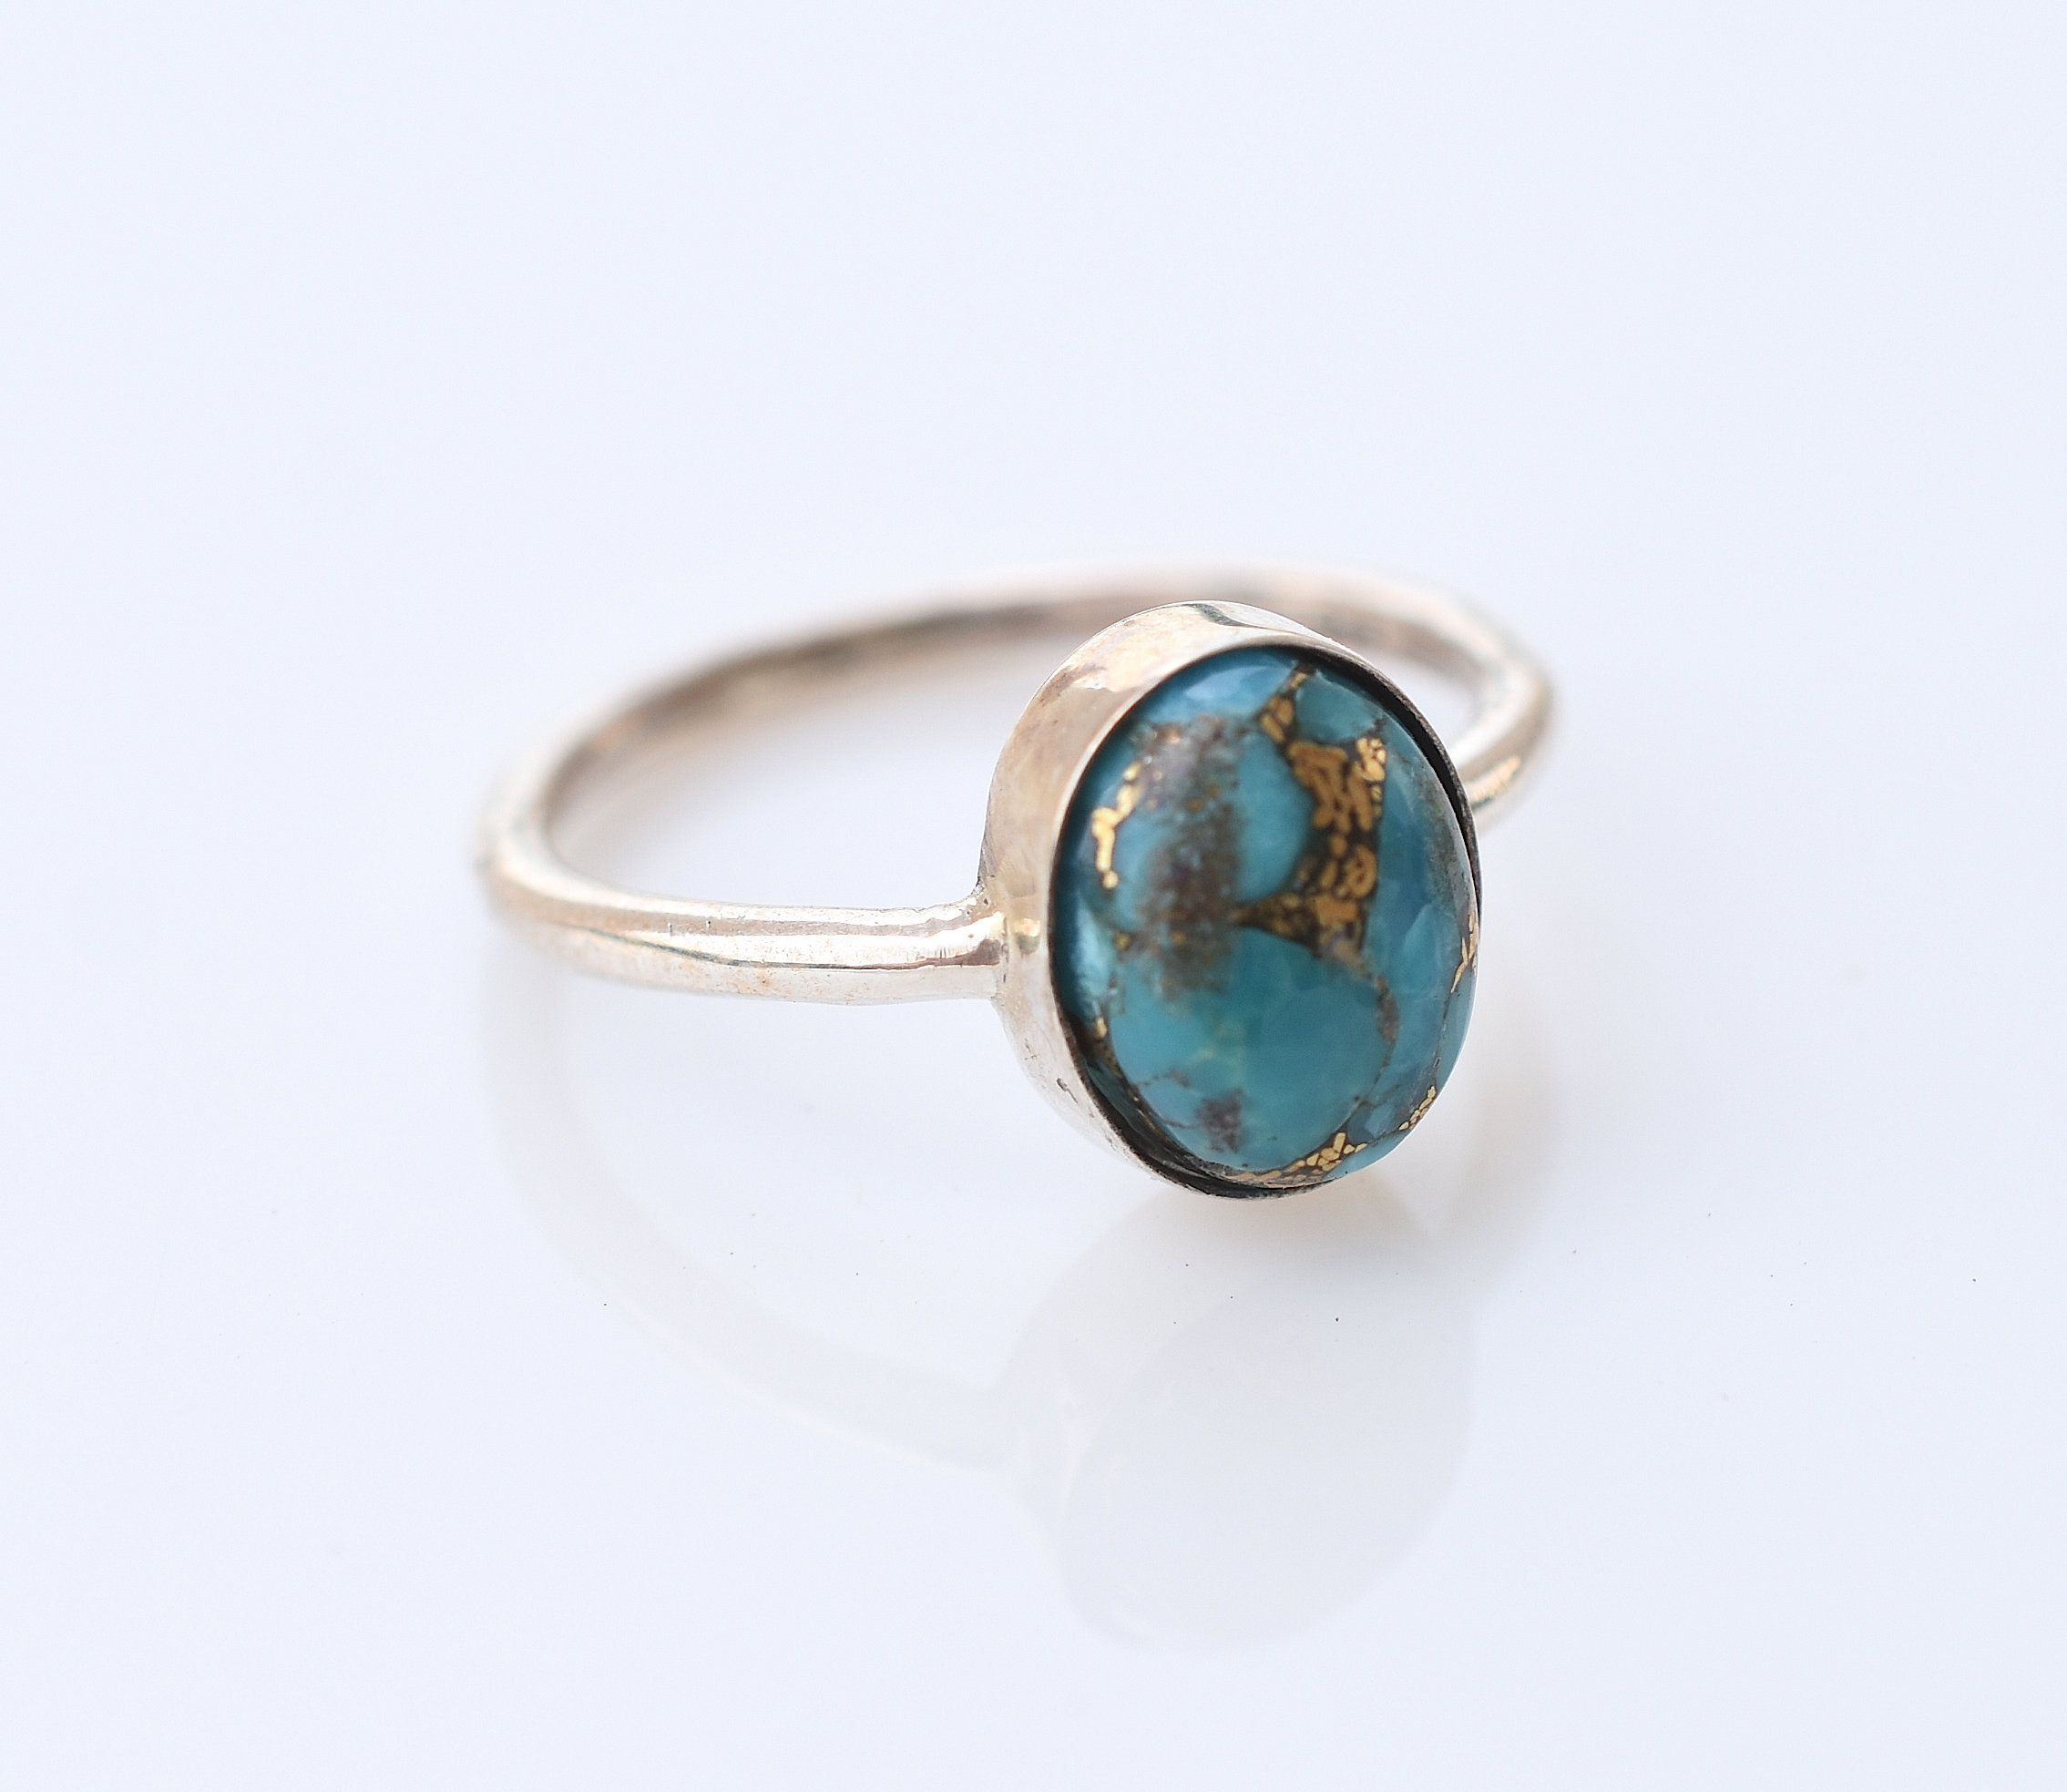 handmade ring gemstone ring statement ring size 7.75 Natural Turquoise ring gift for her 925 silver ring sterling silver ring